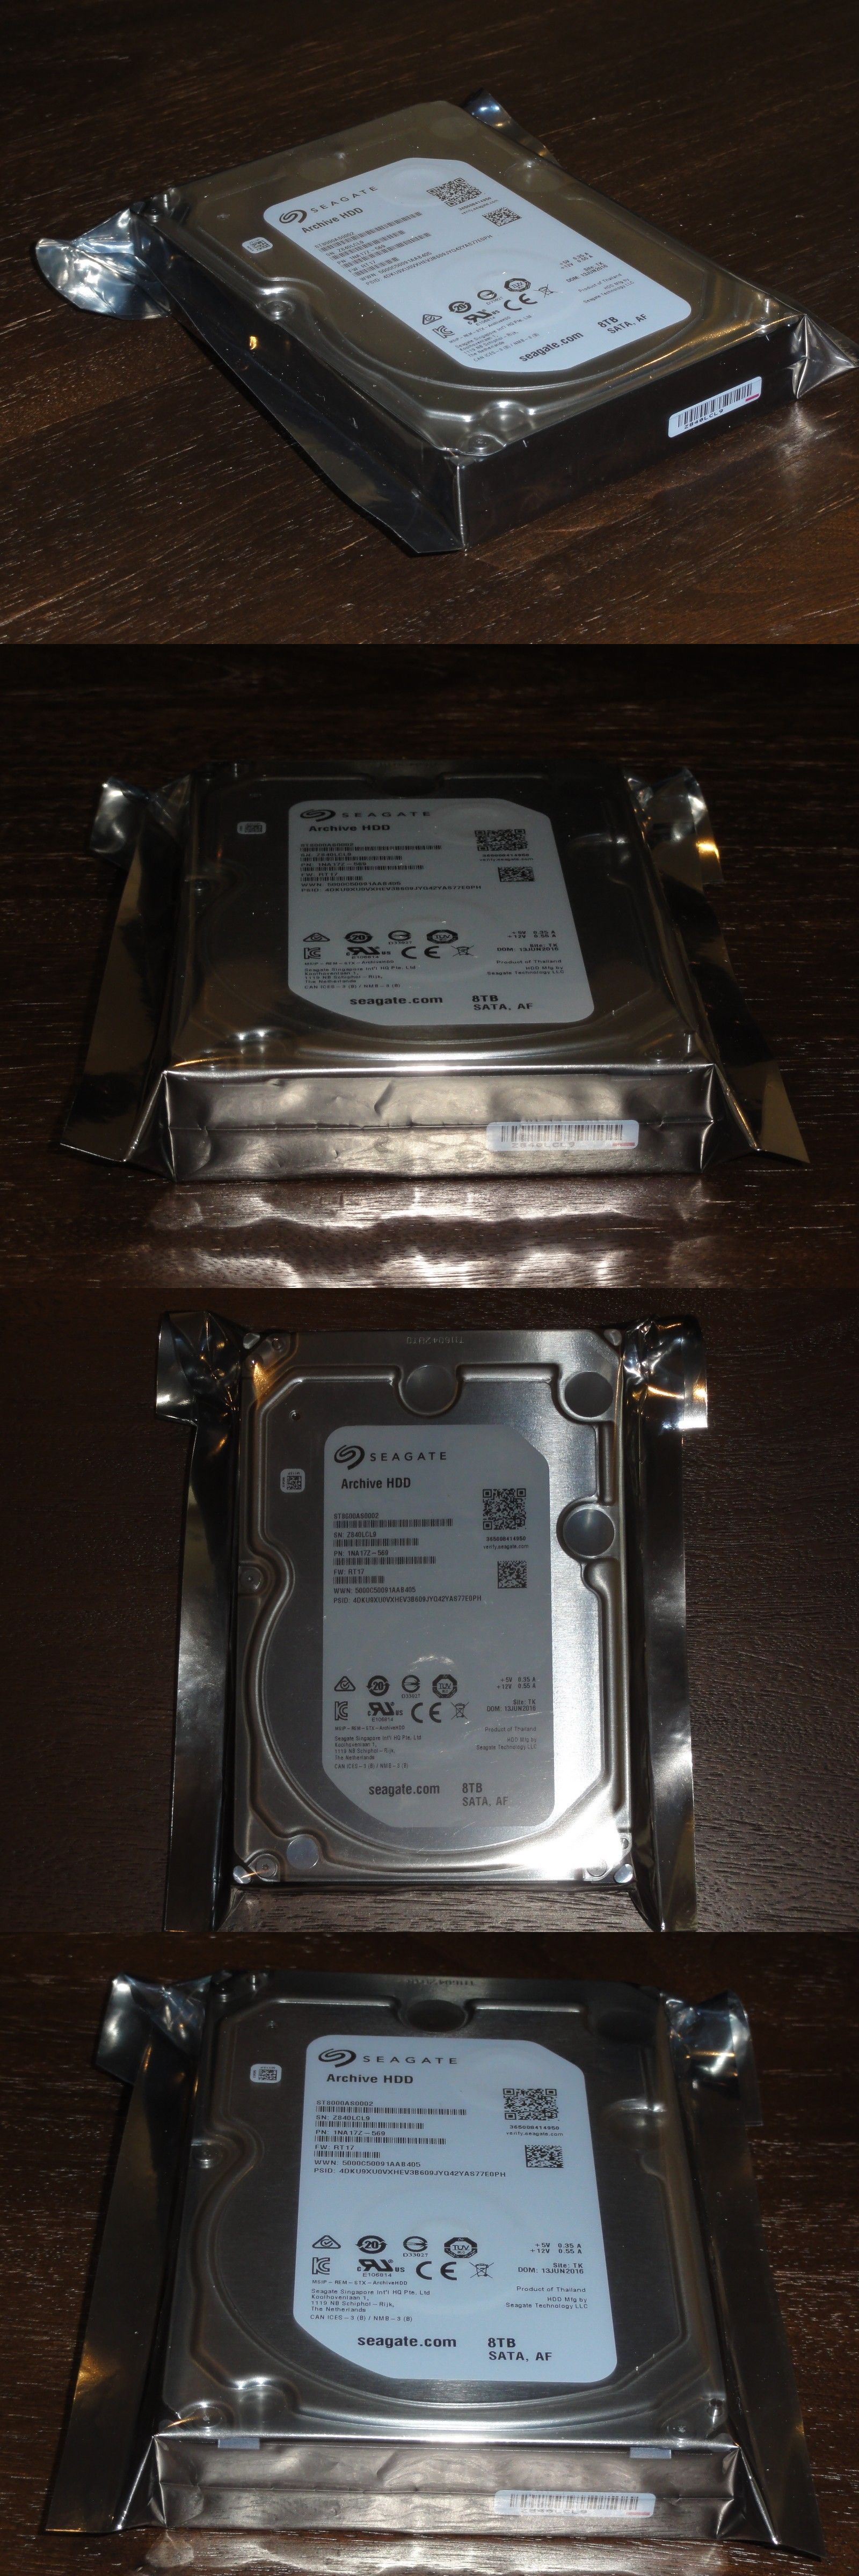 Computers Tablets Networking Seagate Archive Hard Drive 8tb Hdd Hardisk Pc Internal 35 1tb 1000gb 5900rpm St8000as0002 Harddrive